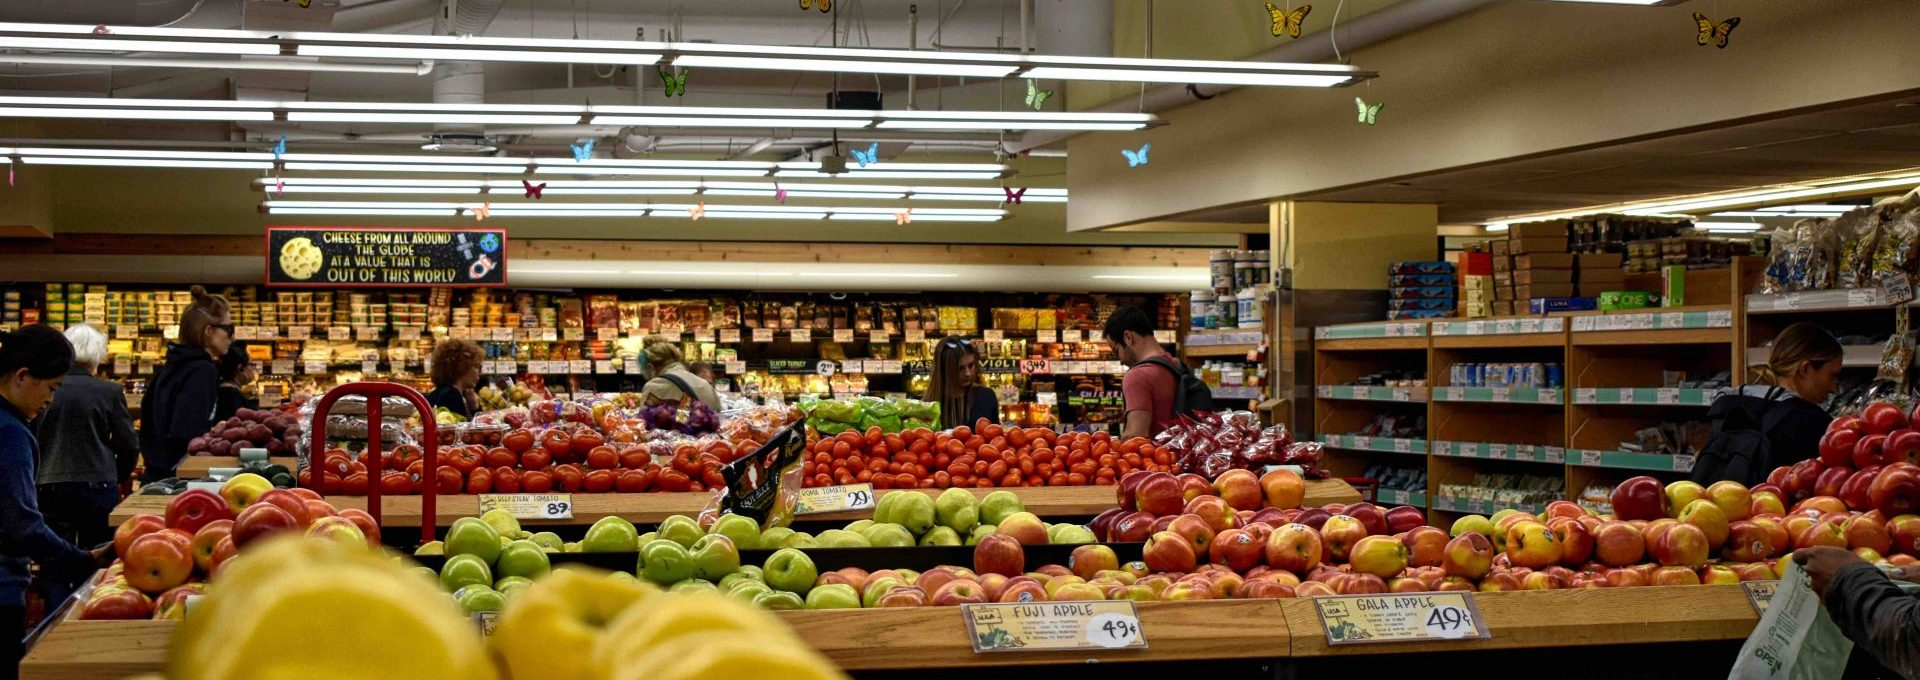 Fruit section of a supermarket